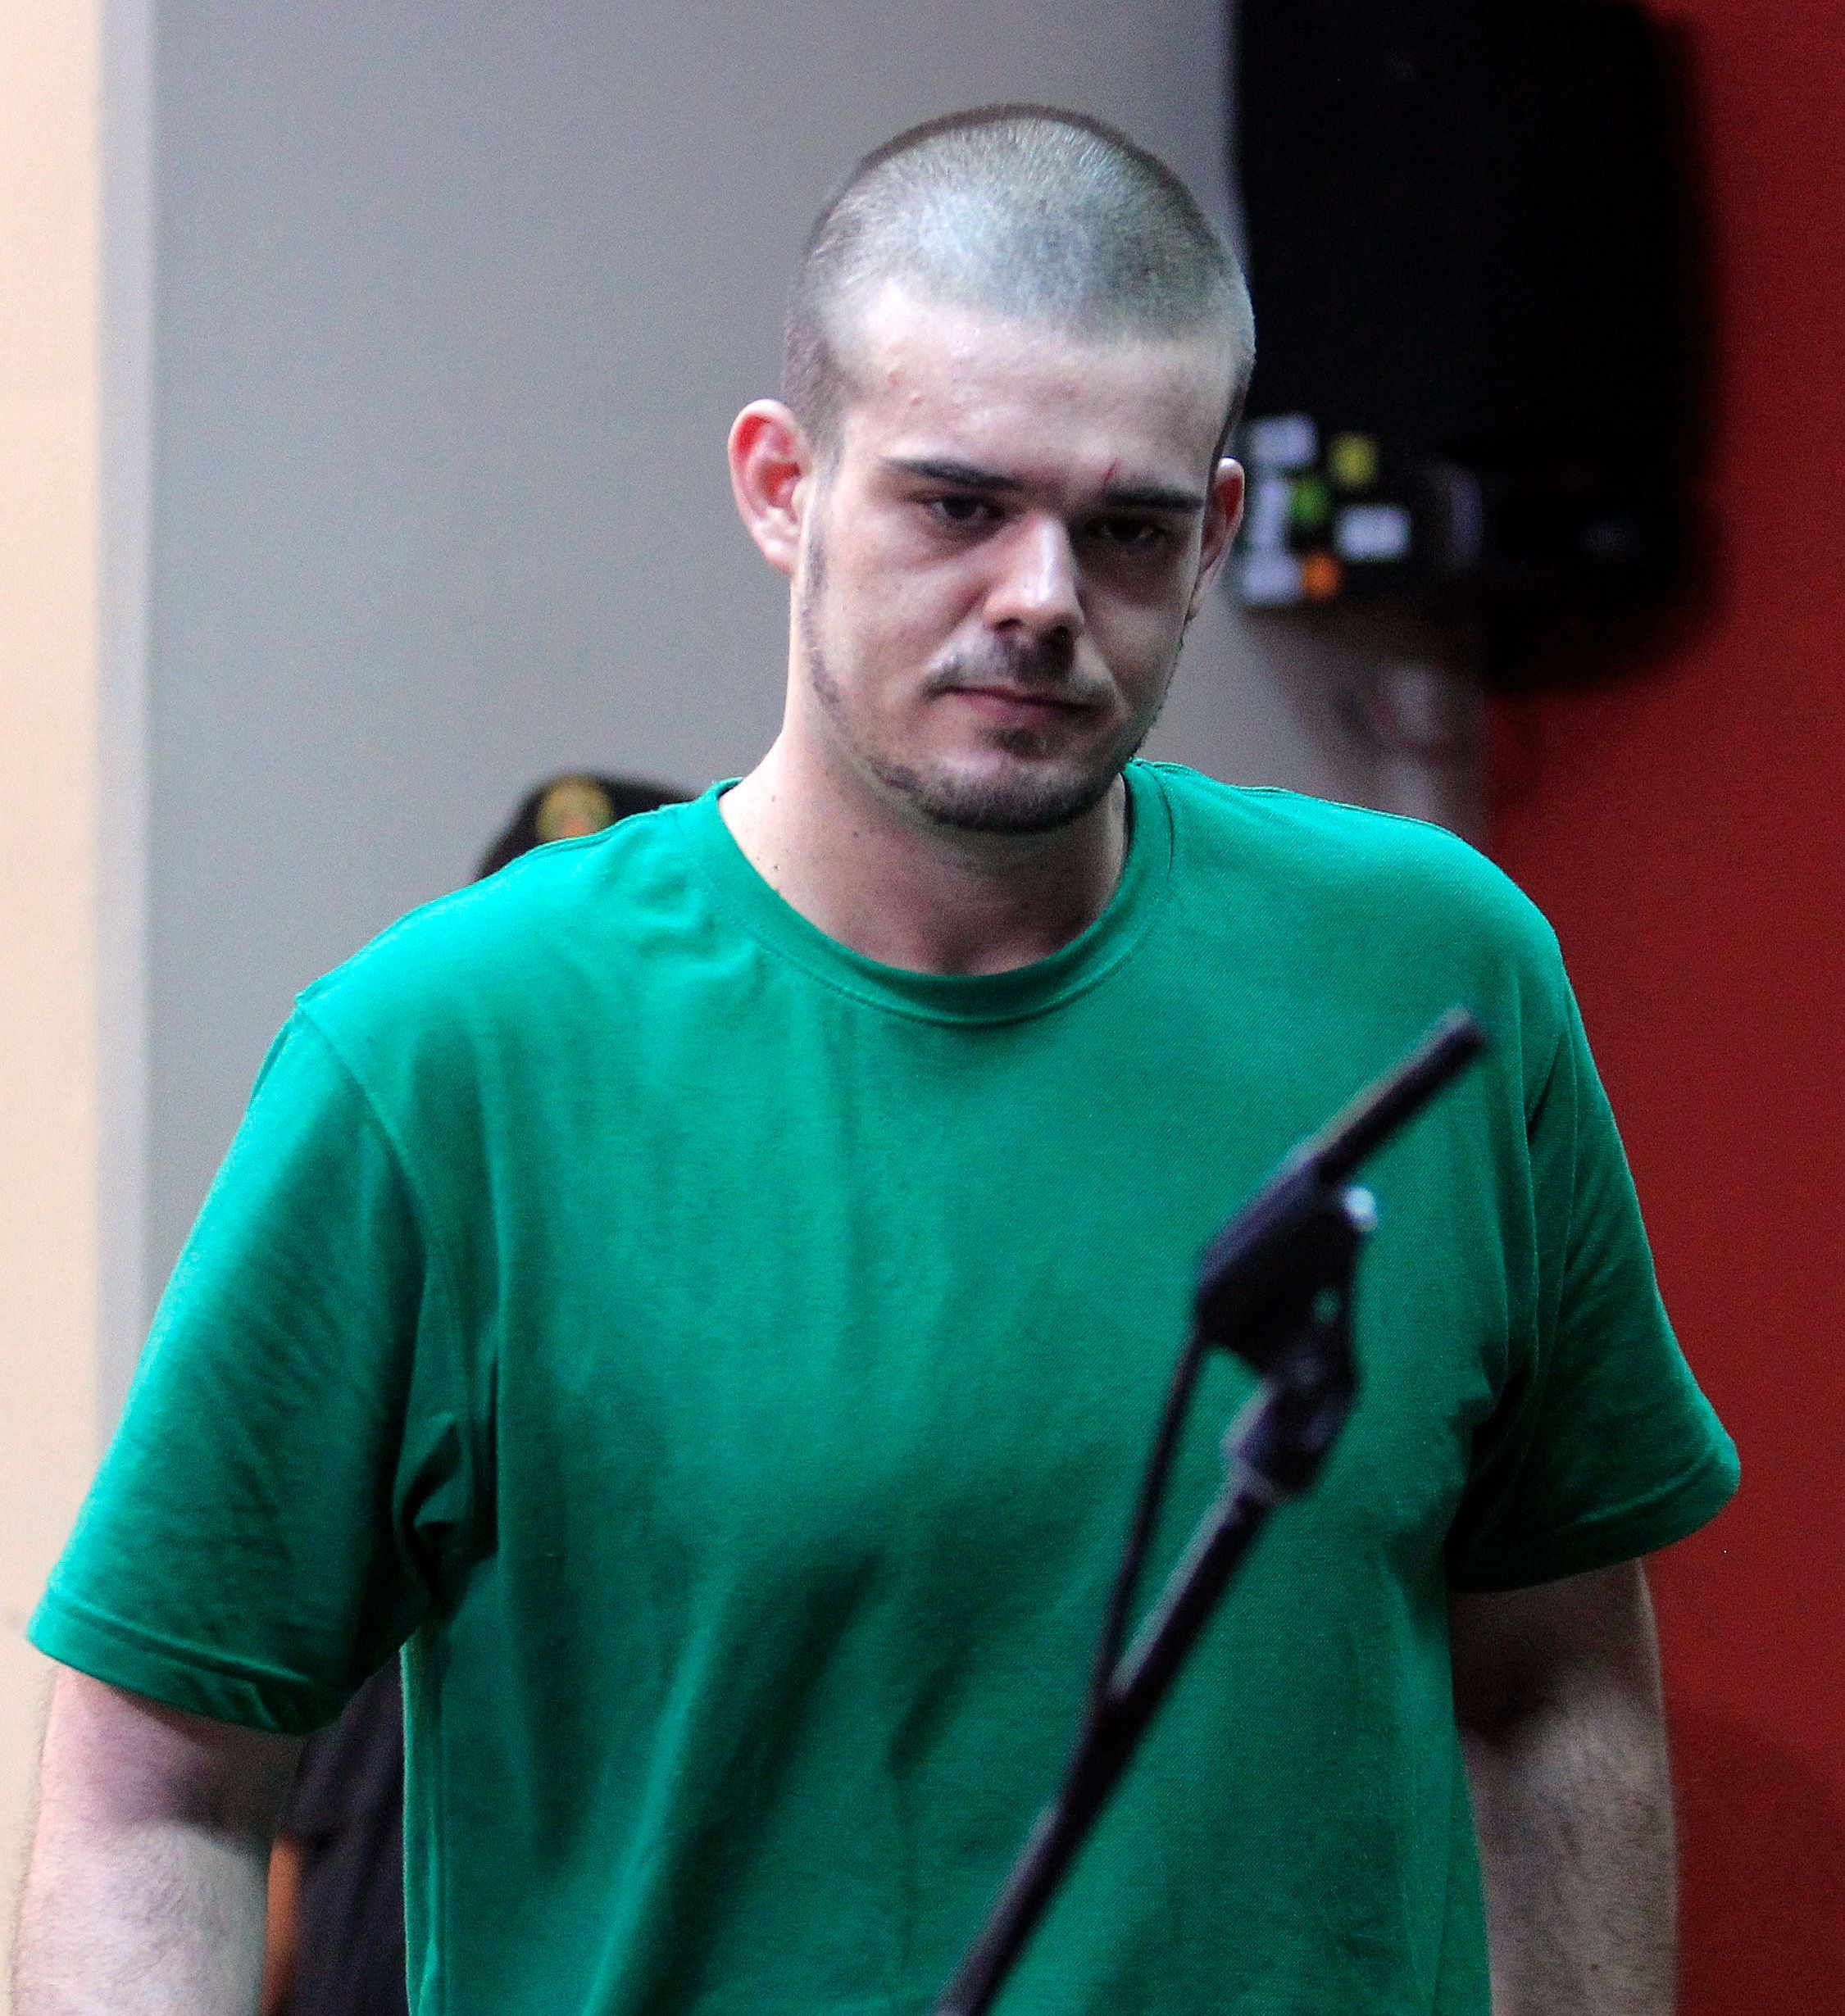 Dutch citizen Joran Van der Sloot walks inside the courtroom during the reading of his verdict, in the Lurigancho prison in Lima January 13, 2012. Van der Sloot was sentenced to 28 years in prison by a Peruvian court on Friday for killing Stephany Flores in Lima in 2010, exactly five years after 18-year-old Alabama native Natalee Holloway disappeared on the island of Aruba after spending time with him.       REUTERS/Pilar Olivares (PERU - Tags: CRIME LAW POLITICS)